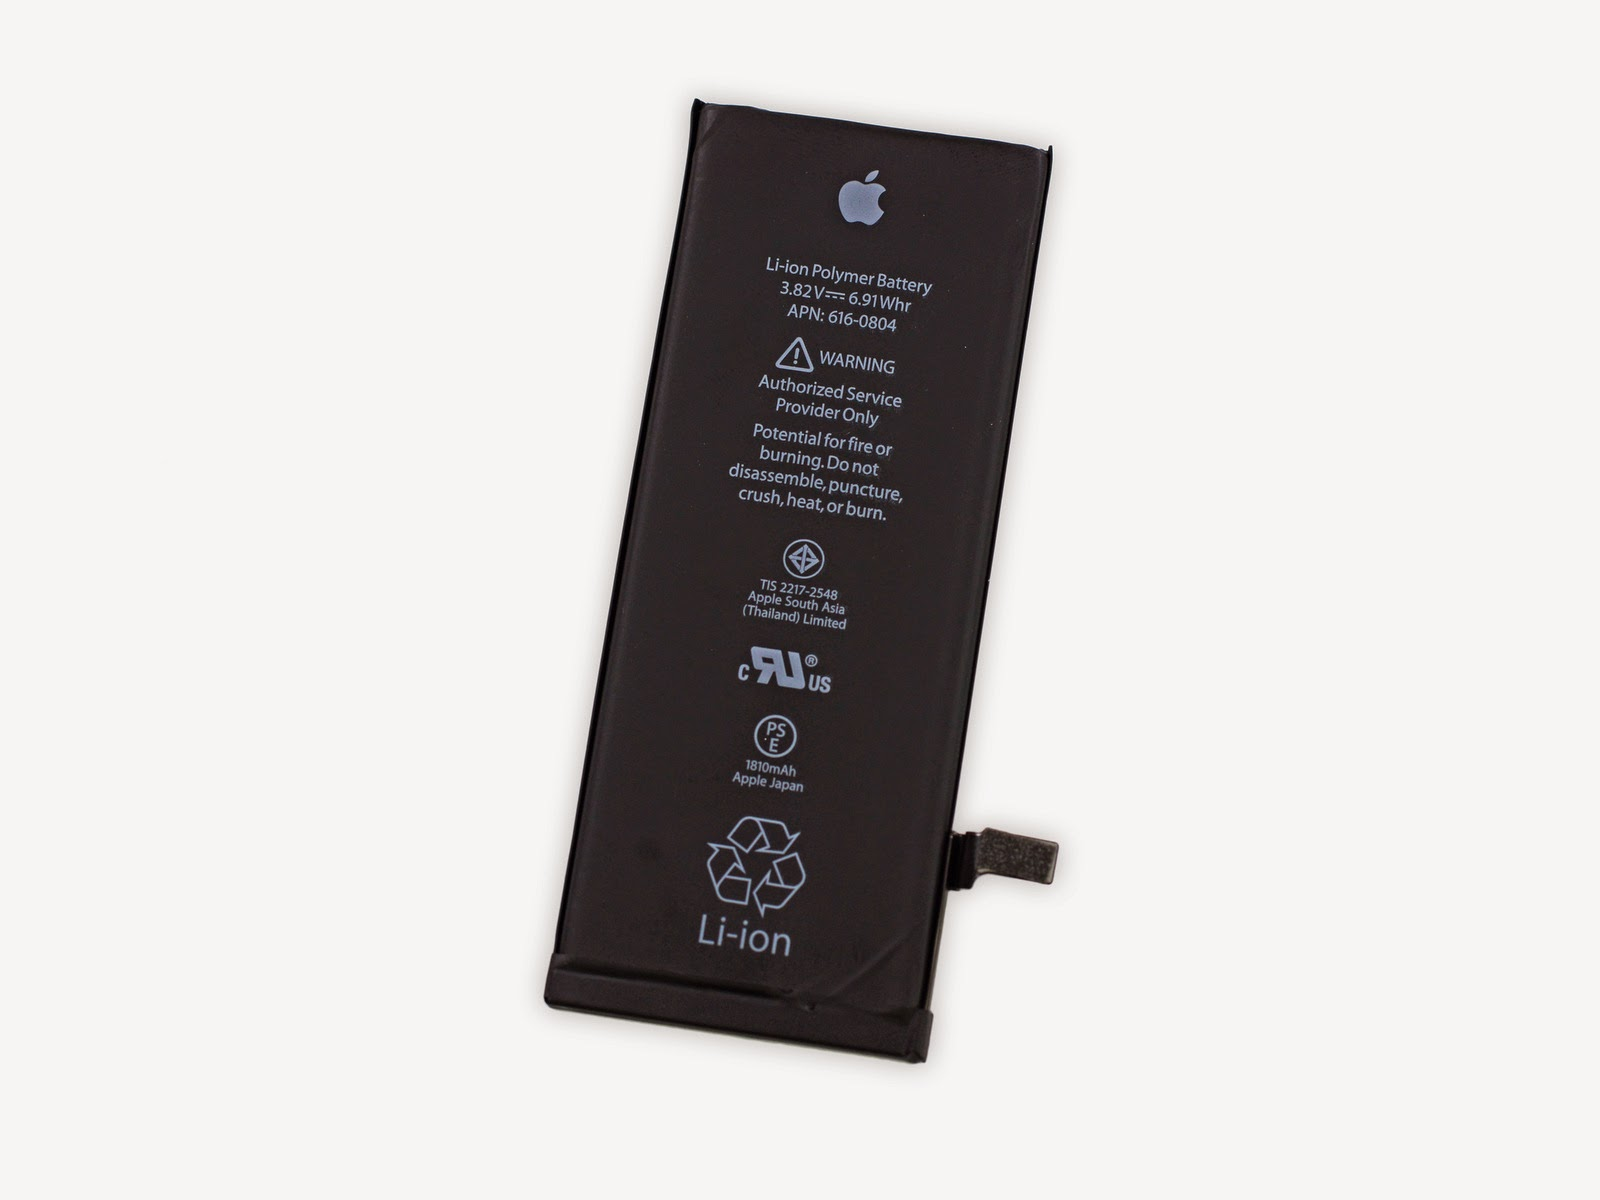 lithium ion battery in iPhone 6